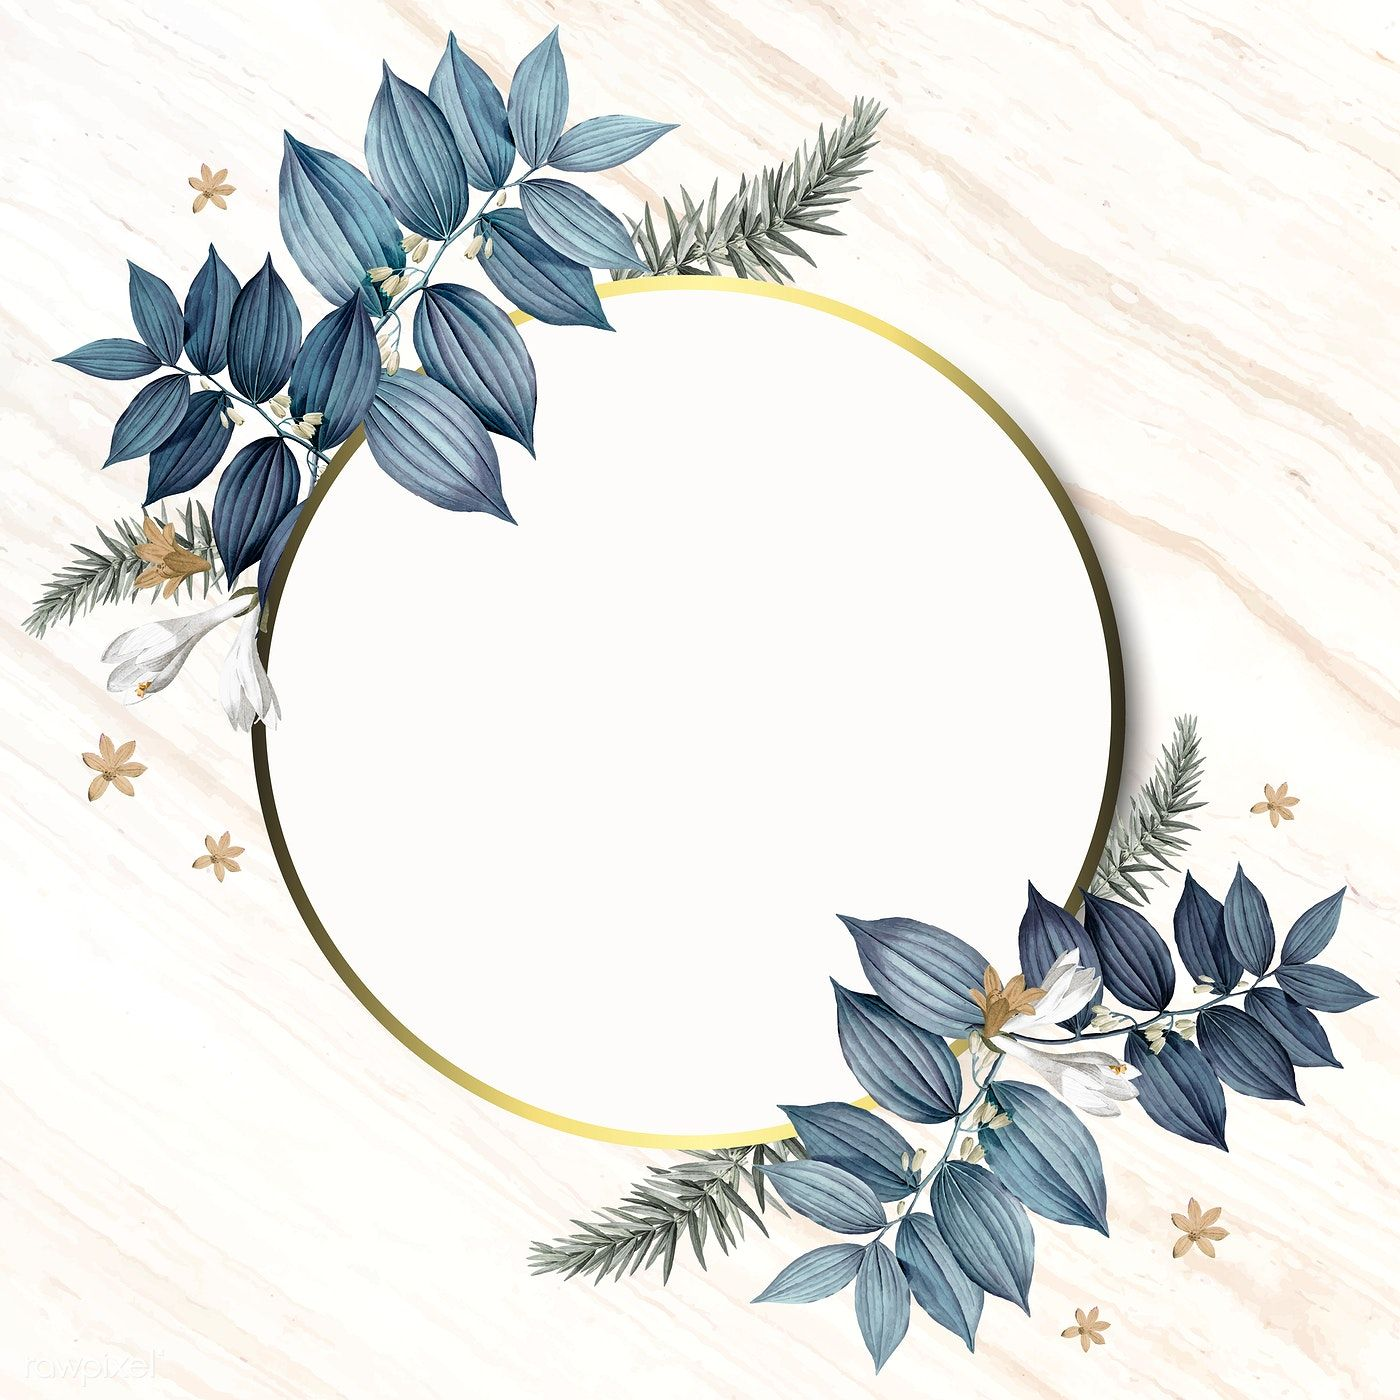 Download Premium Vector Of Round Foliage Frame On White Marble Background Wedding Frames Flower Background Wallpaper White Marble Background